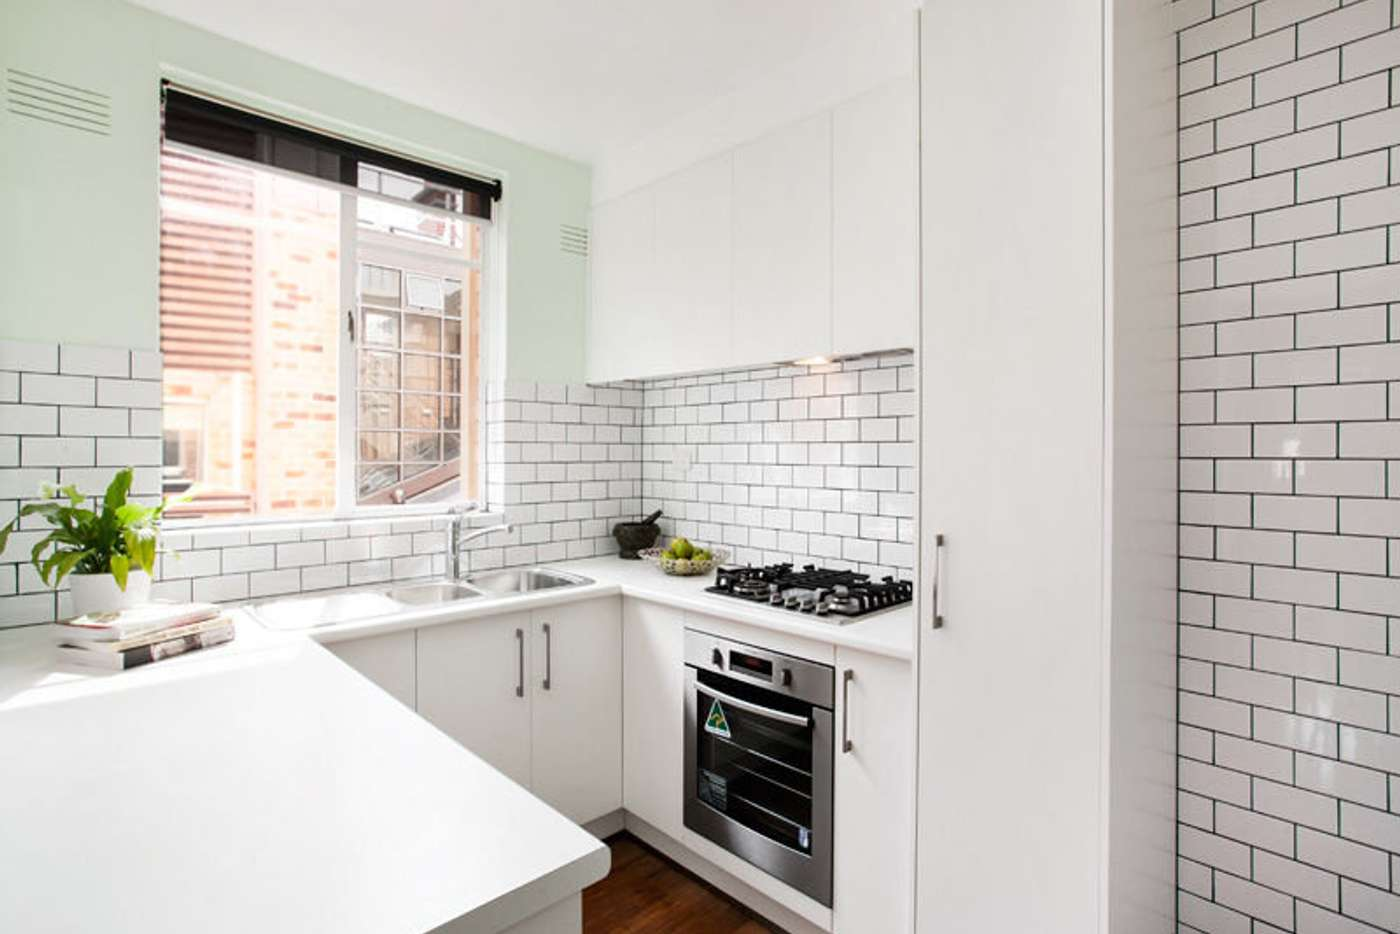 Main view of Homely apartment listing, 7/81 Grey Street, St Kilda VIC 3182